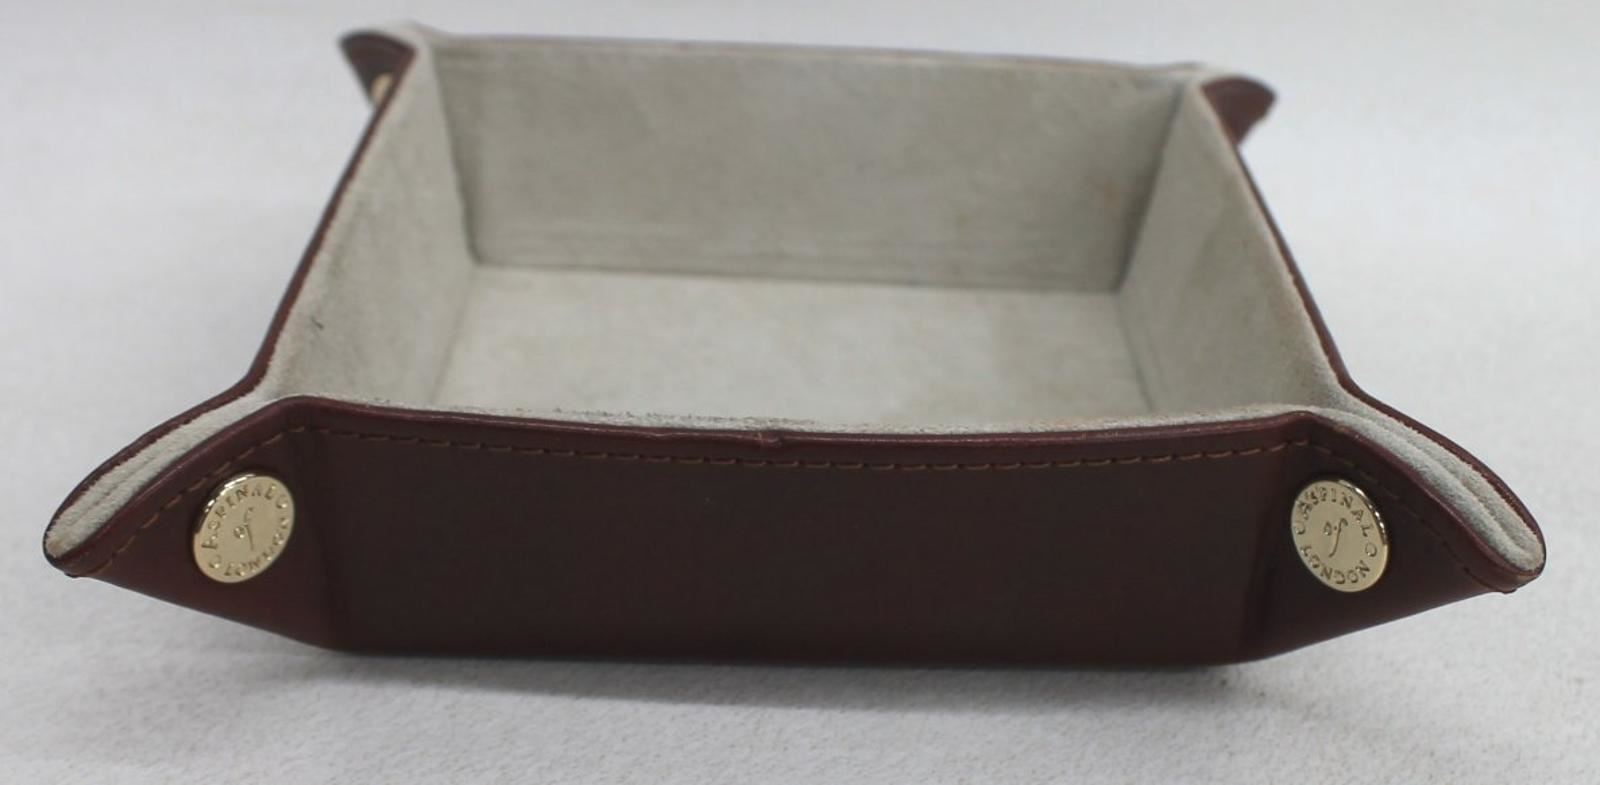 ASPINAL-OF-LONDON-Mini-Tidy-Tray-Brown-Leather-Suede-Lined-Trinket-Holder